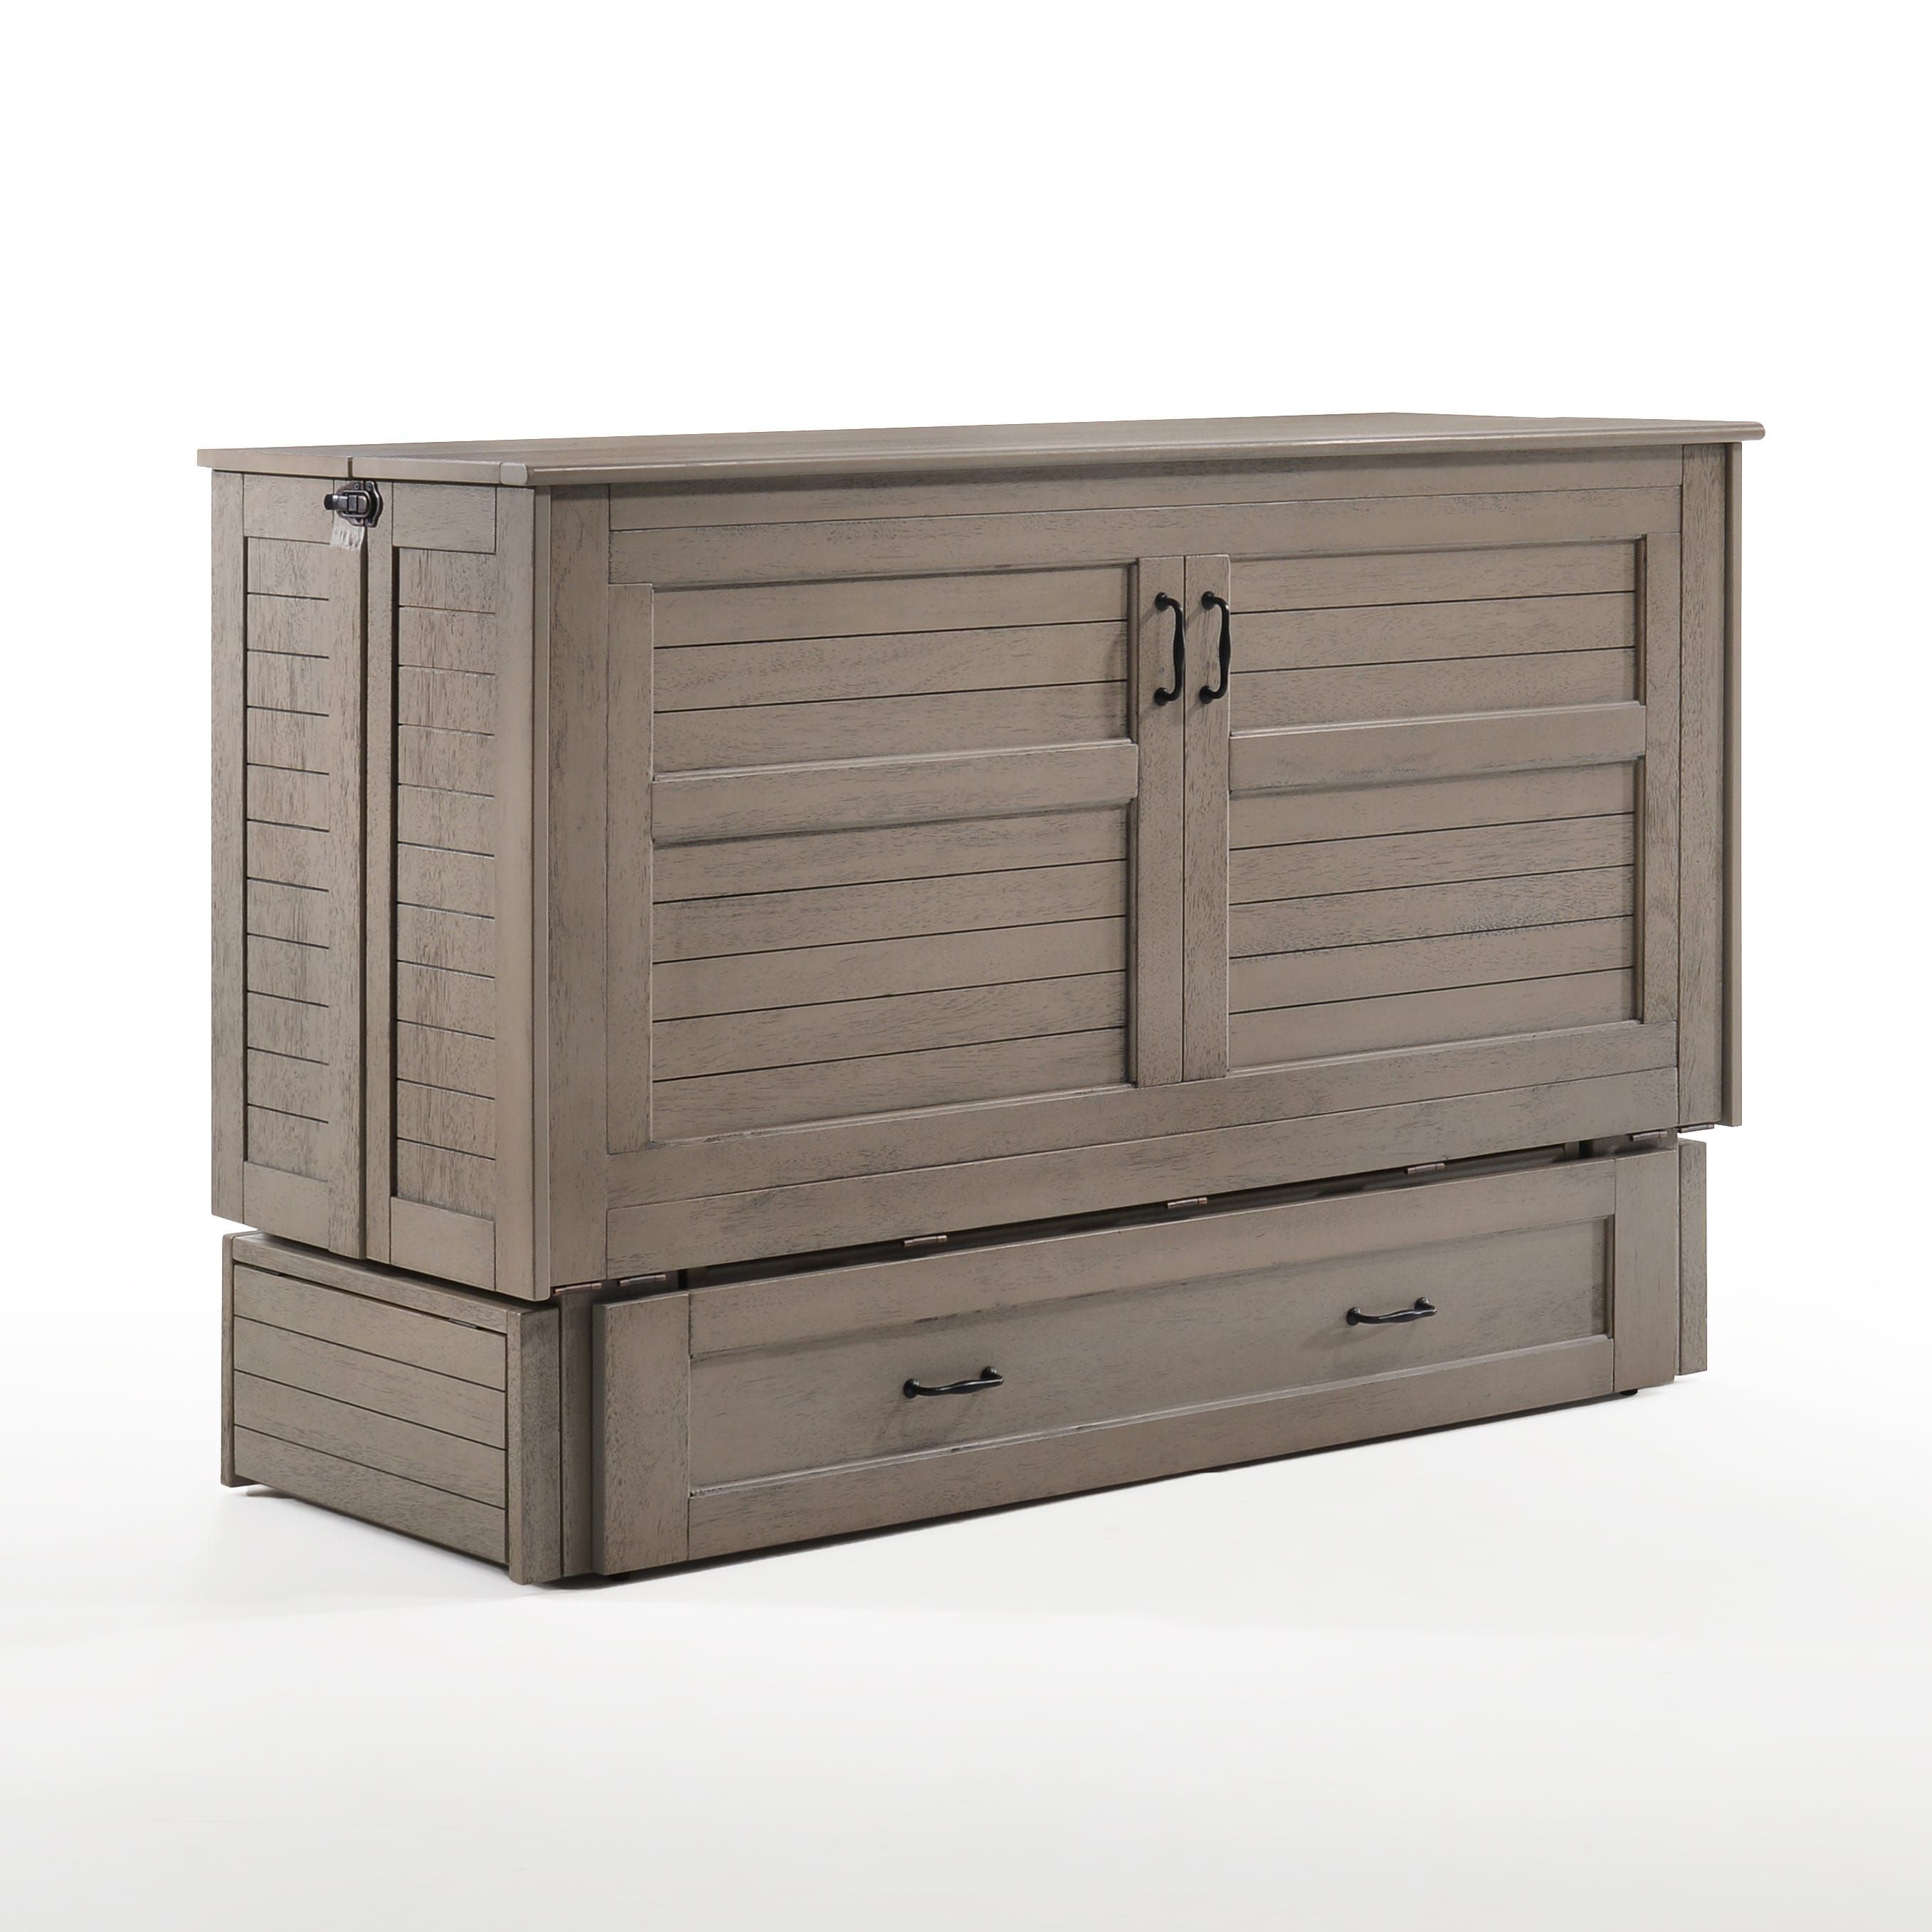 Poppy Brushed Driftwood Queen Murphy Cabinet Bed By Night Day Furniture